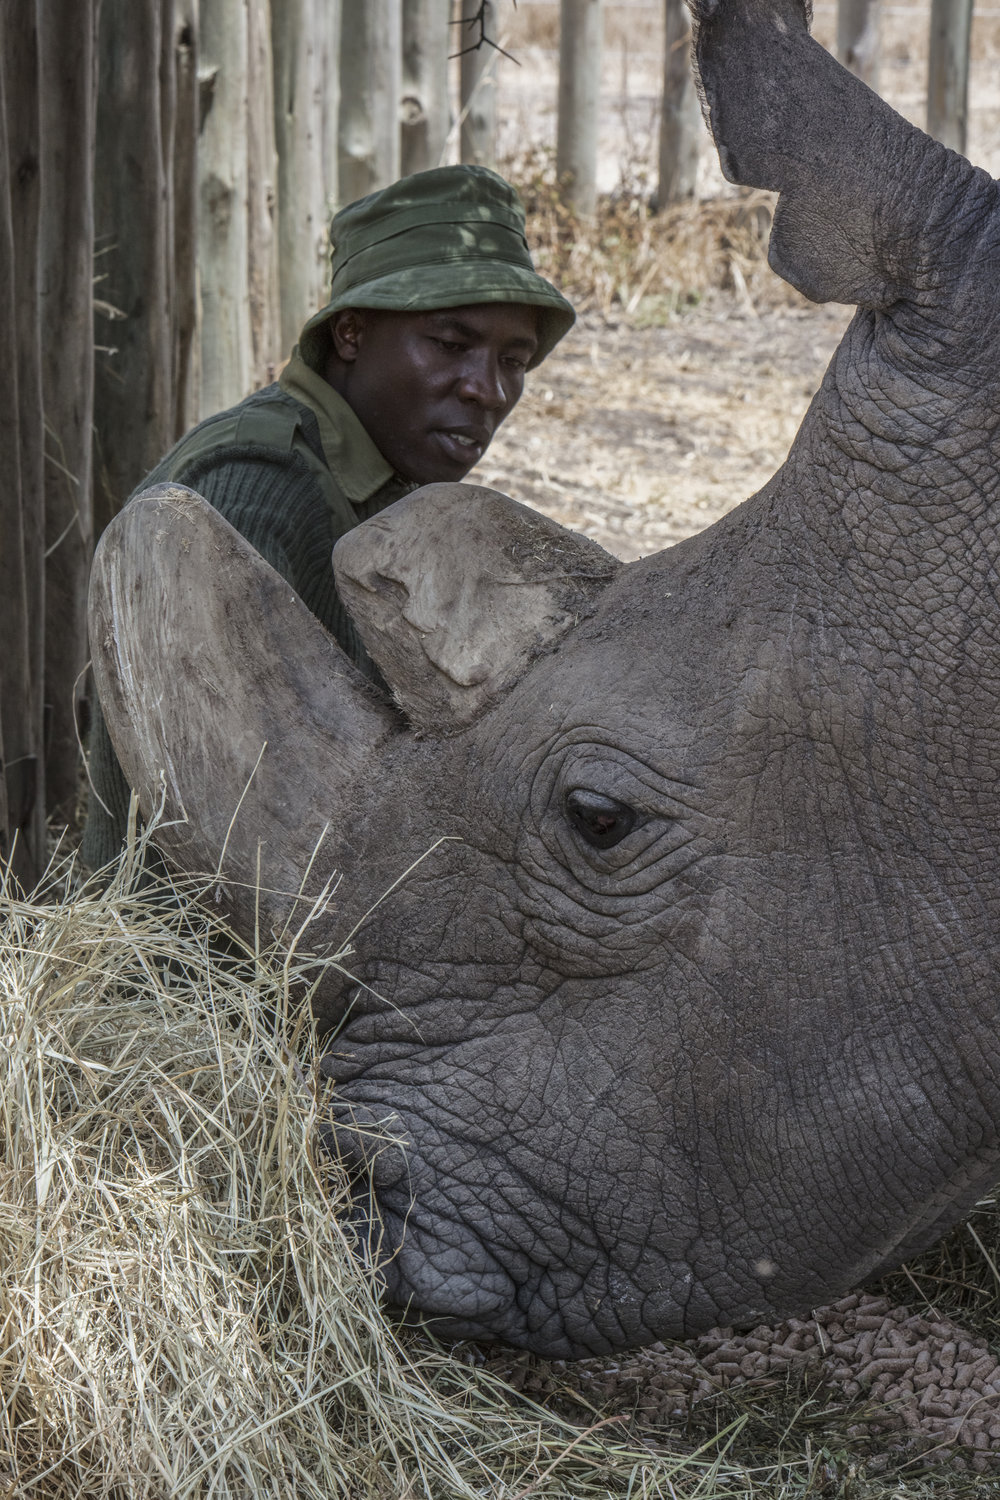 JAMES MWENDA LOVINGLY CARES FOR SUDAN, THE LAST NORTHERN WHITE RHINO MALE, A FEW DAYS BEFORE HE DIED. IMAGE THANKS TO STEVE RUSSELL STUDIOS.